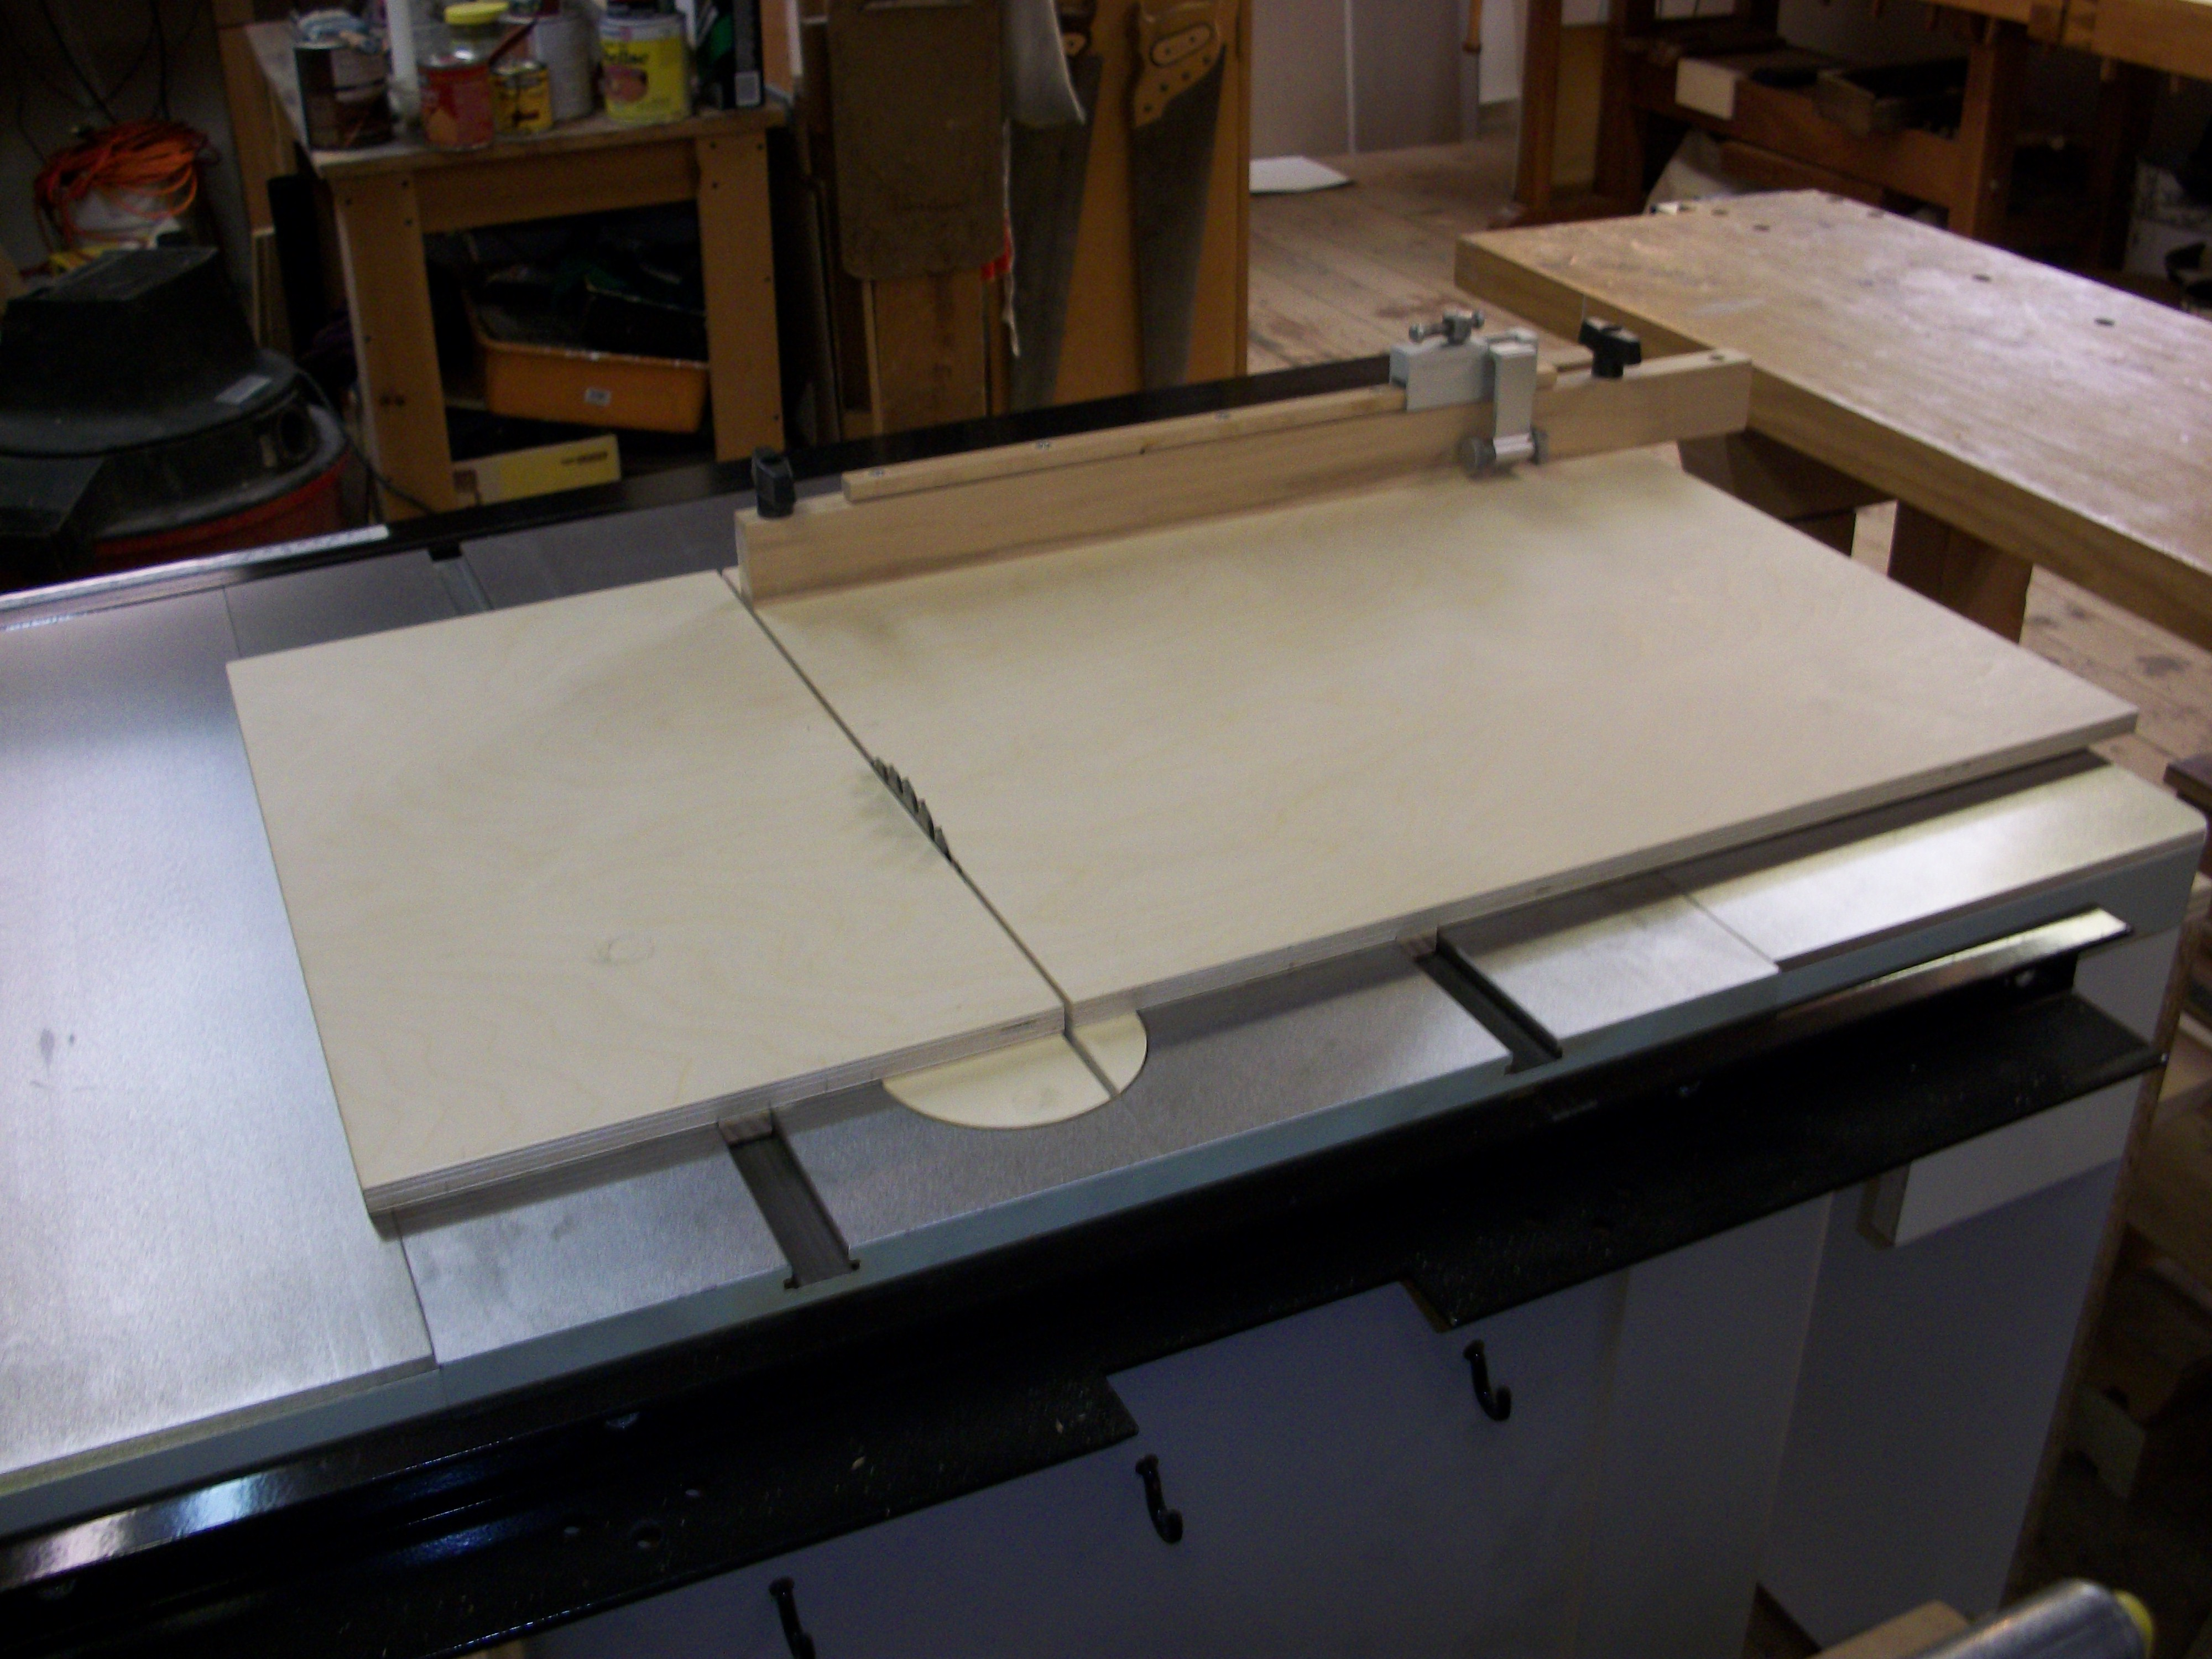 Run Away From Or Deal With It The Table Saw